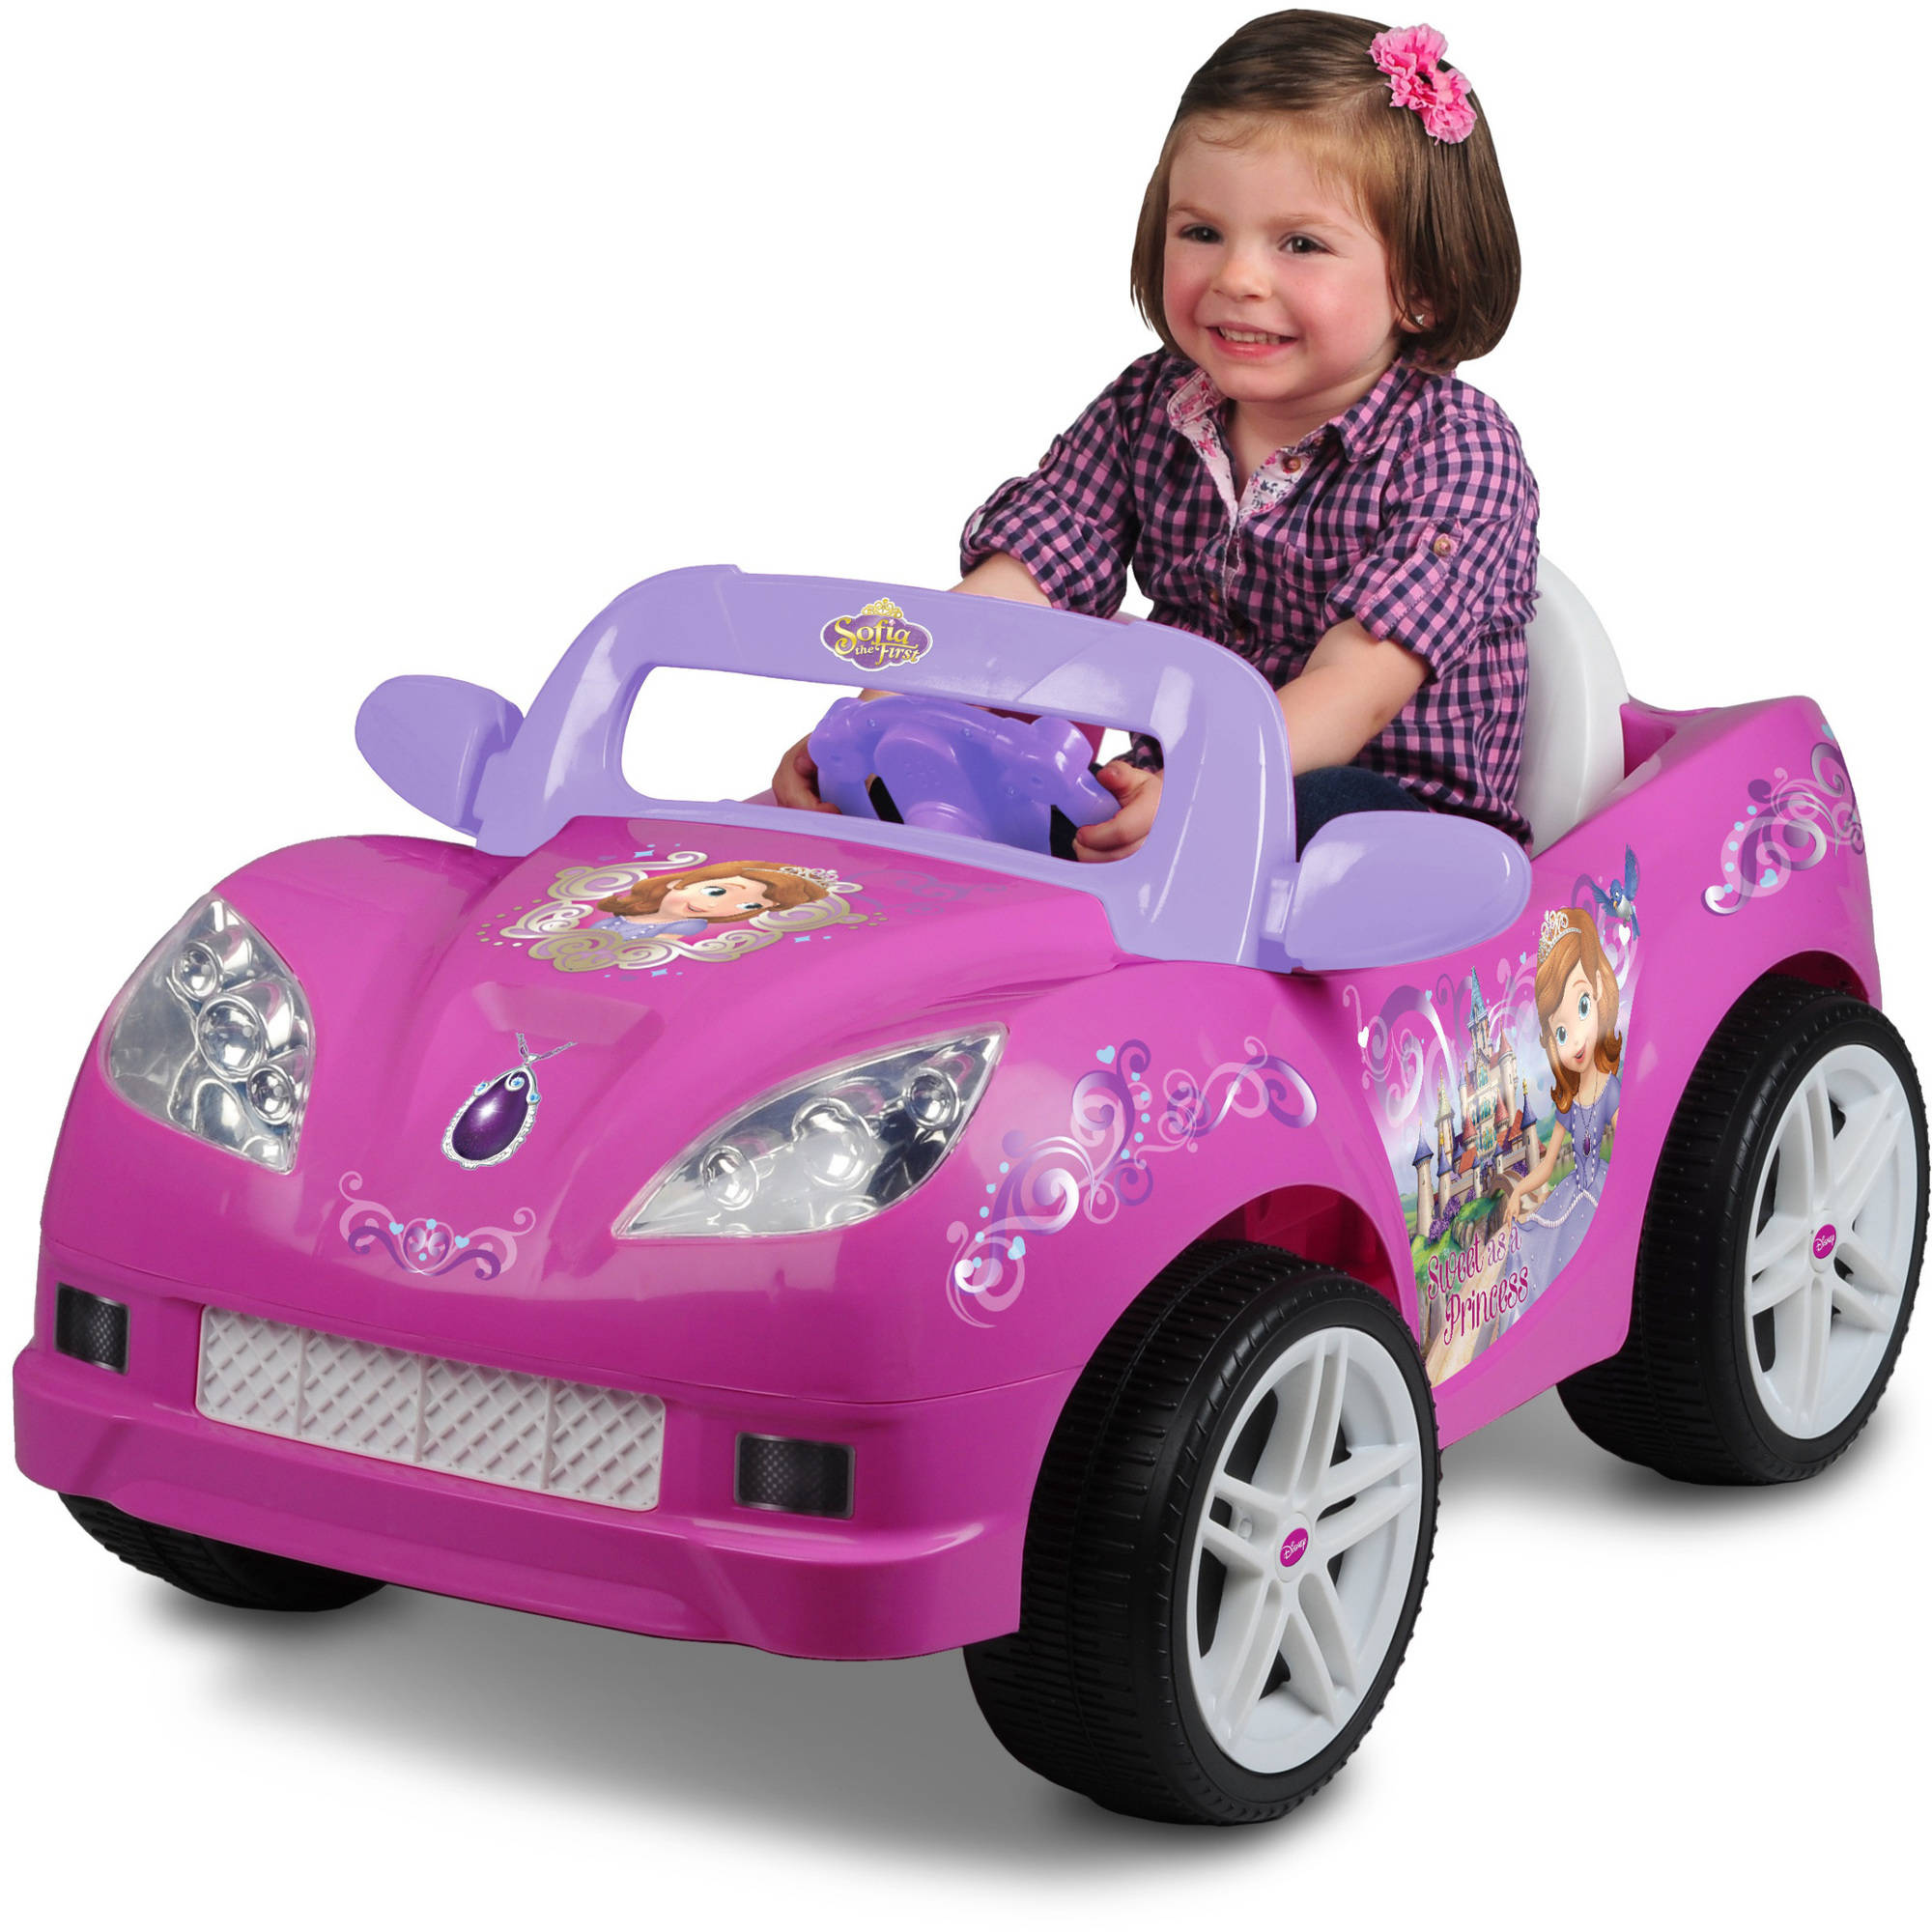 Disney Sofia the First Convertible Car 6-Volt Battery-Powered Ride-On by Ballard Pacific Resources